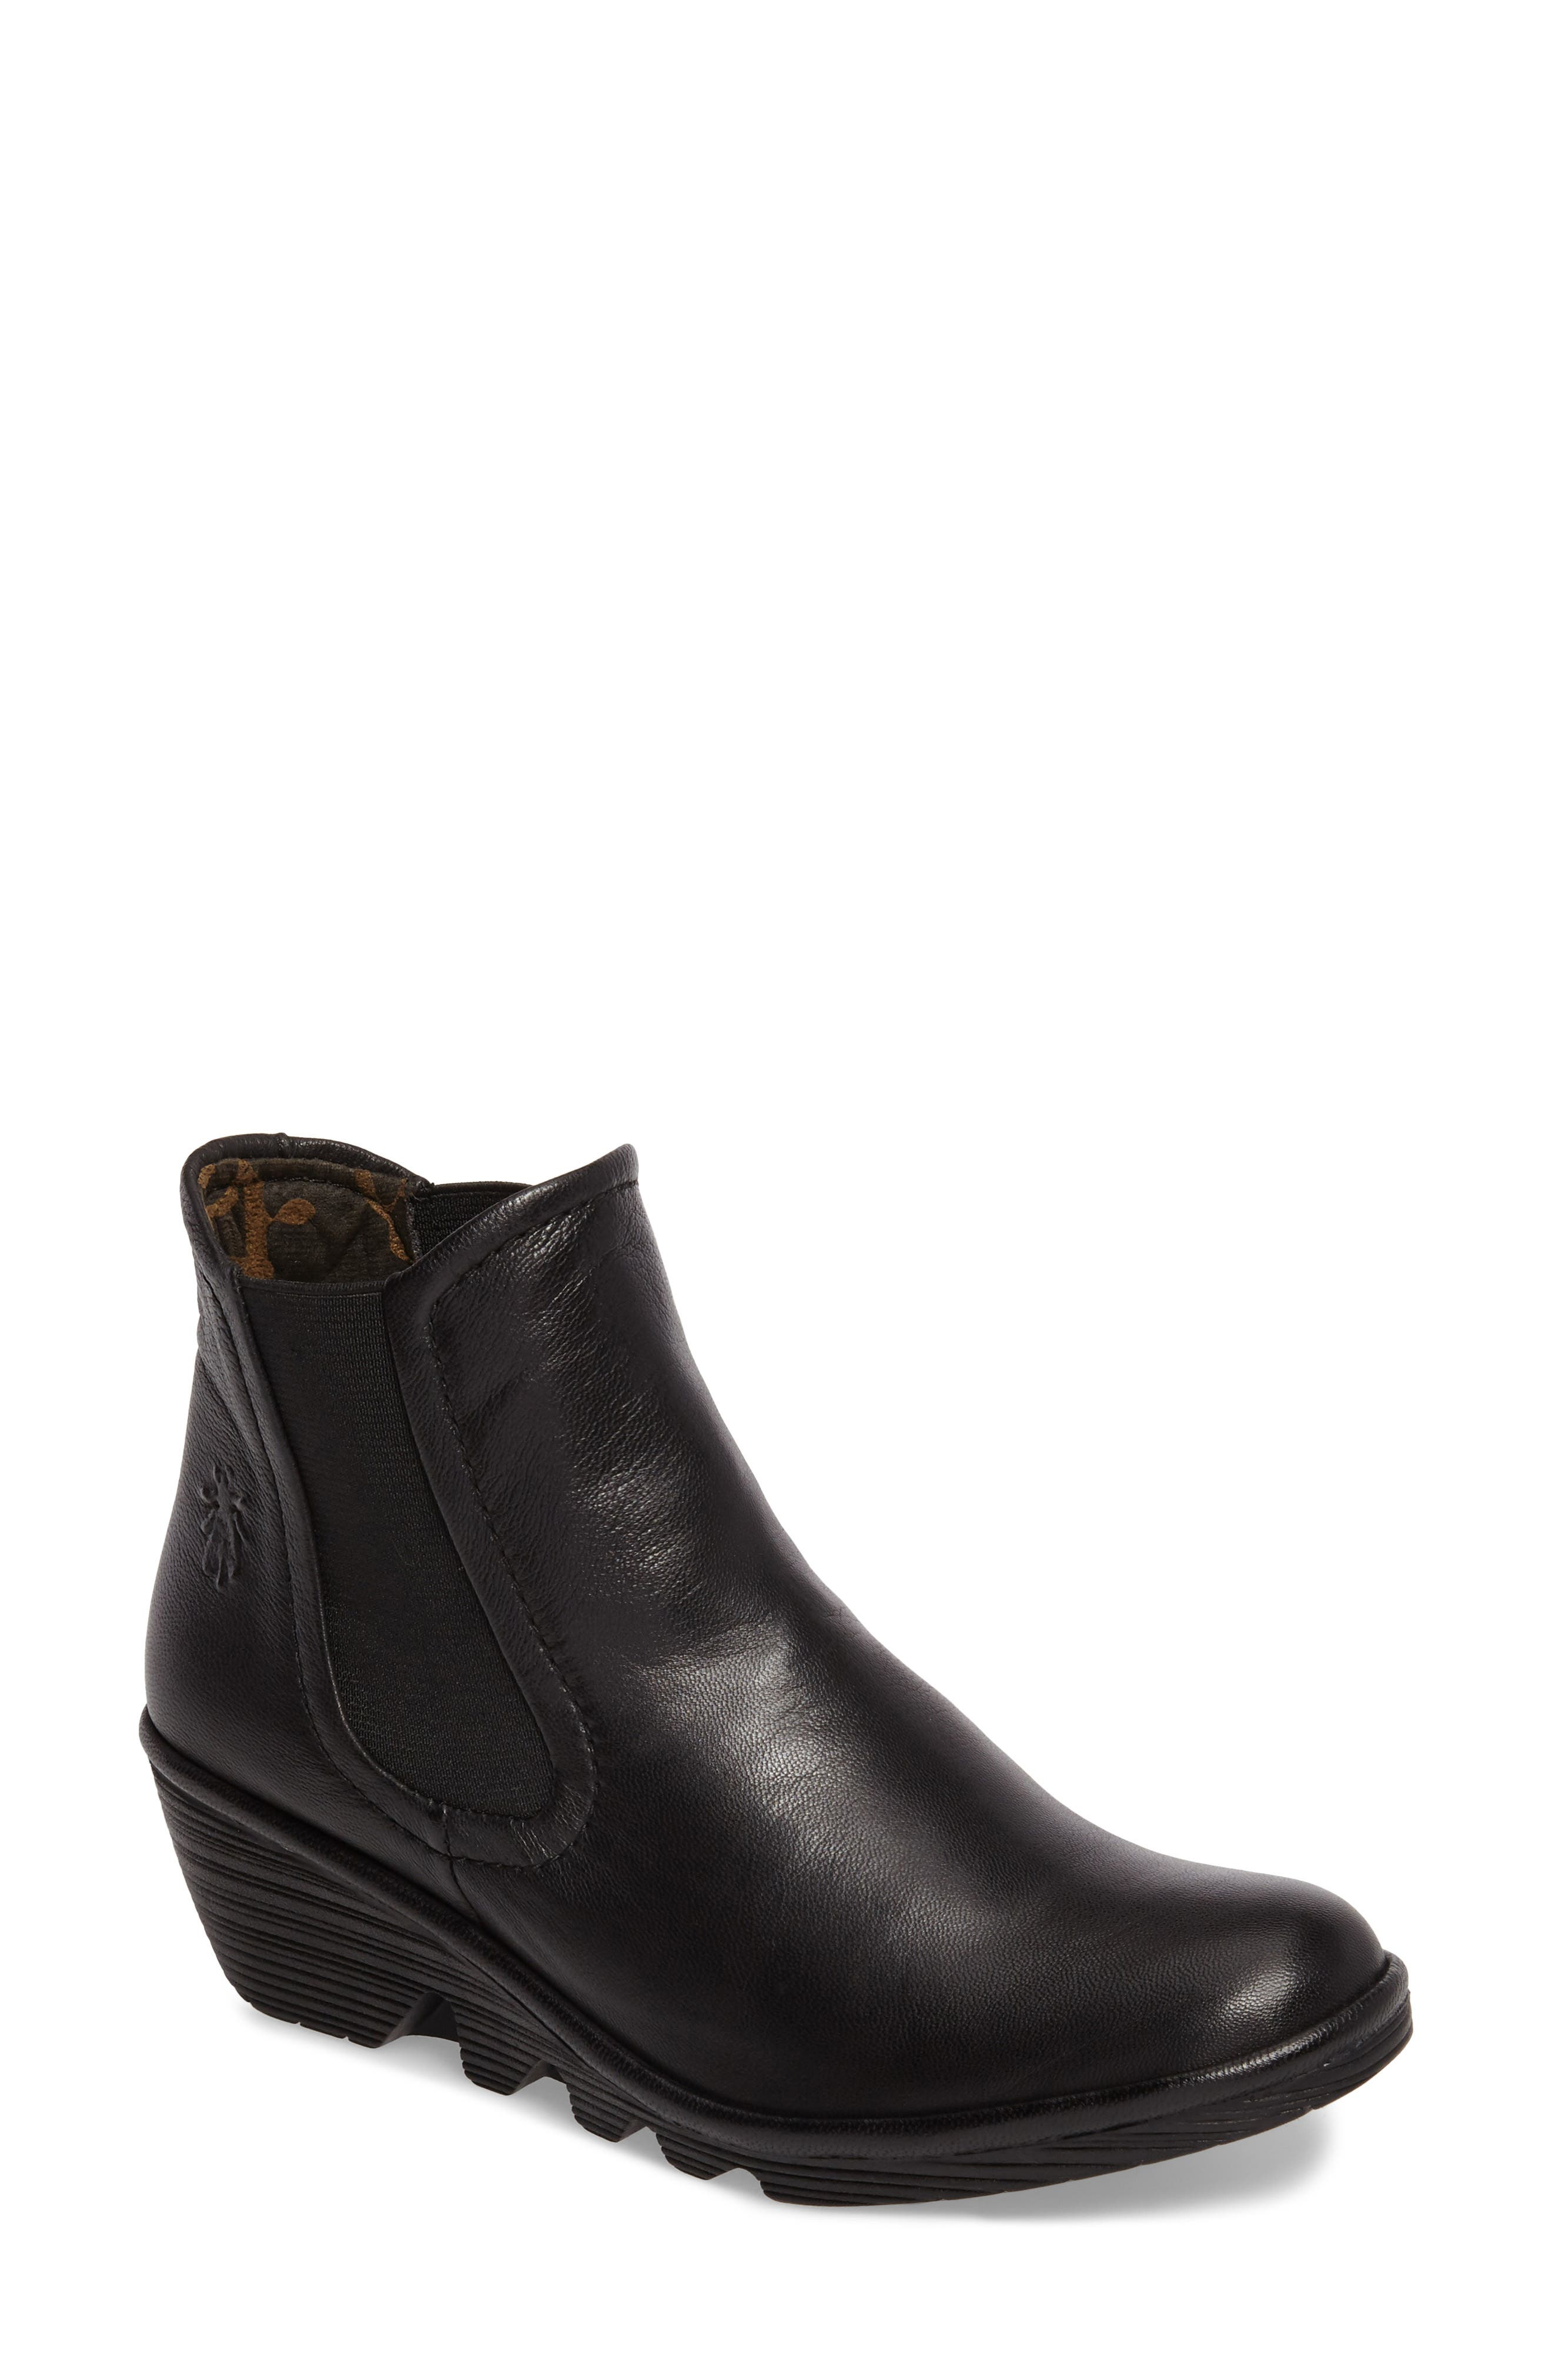 'Phil' Chelsea Boot,                         Main,                         color,